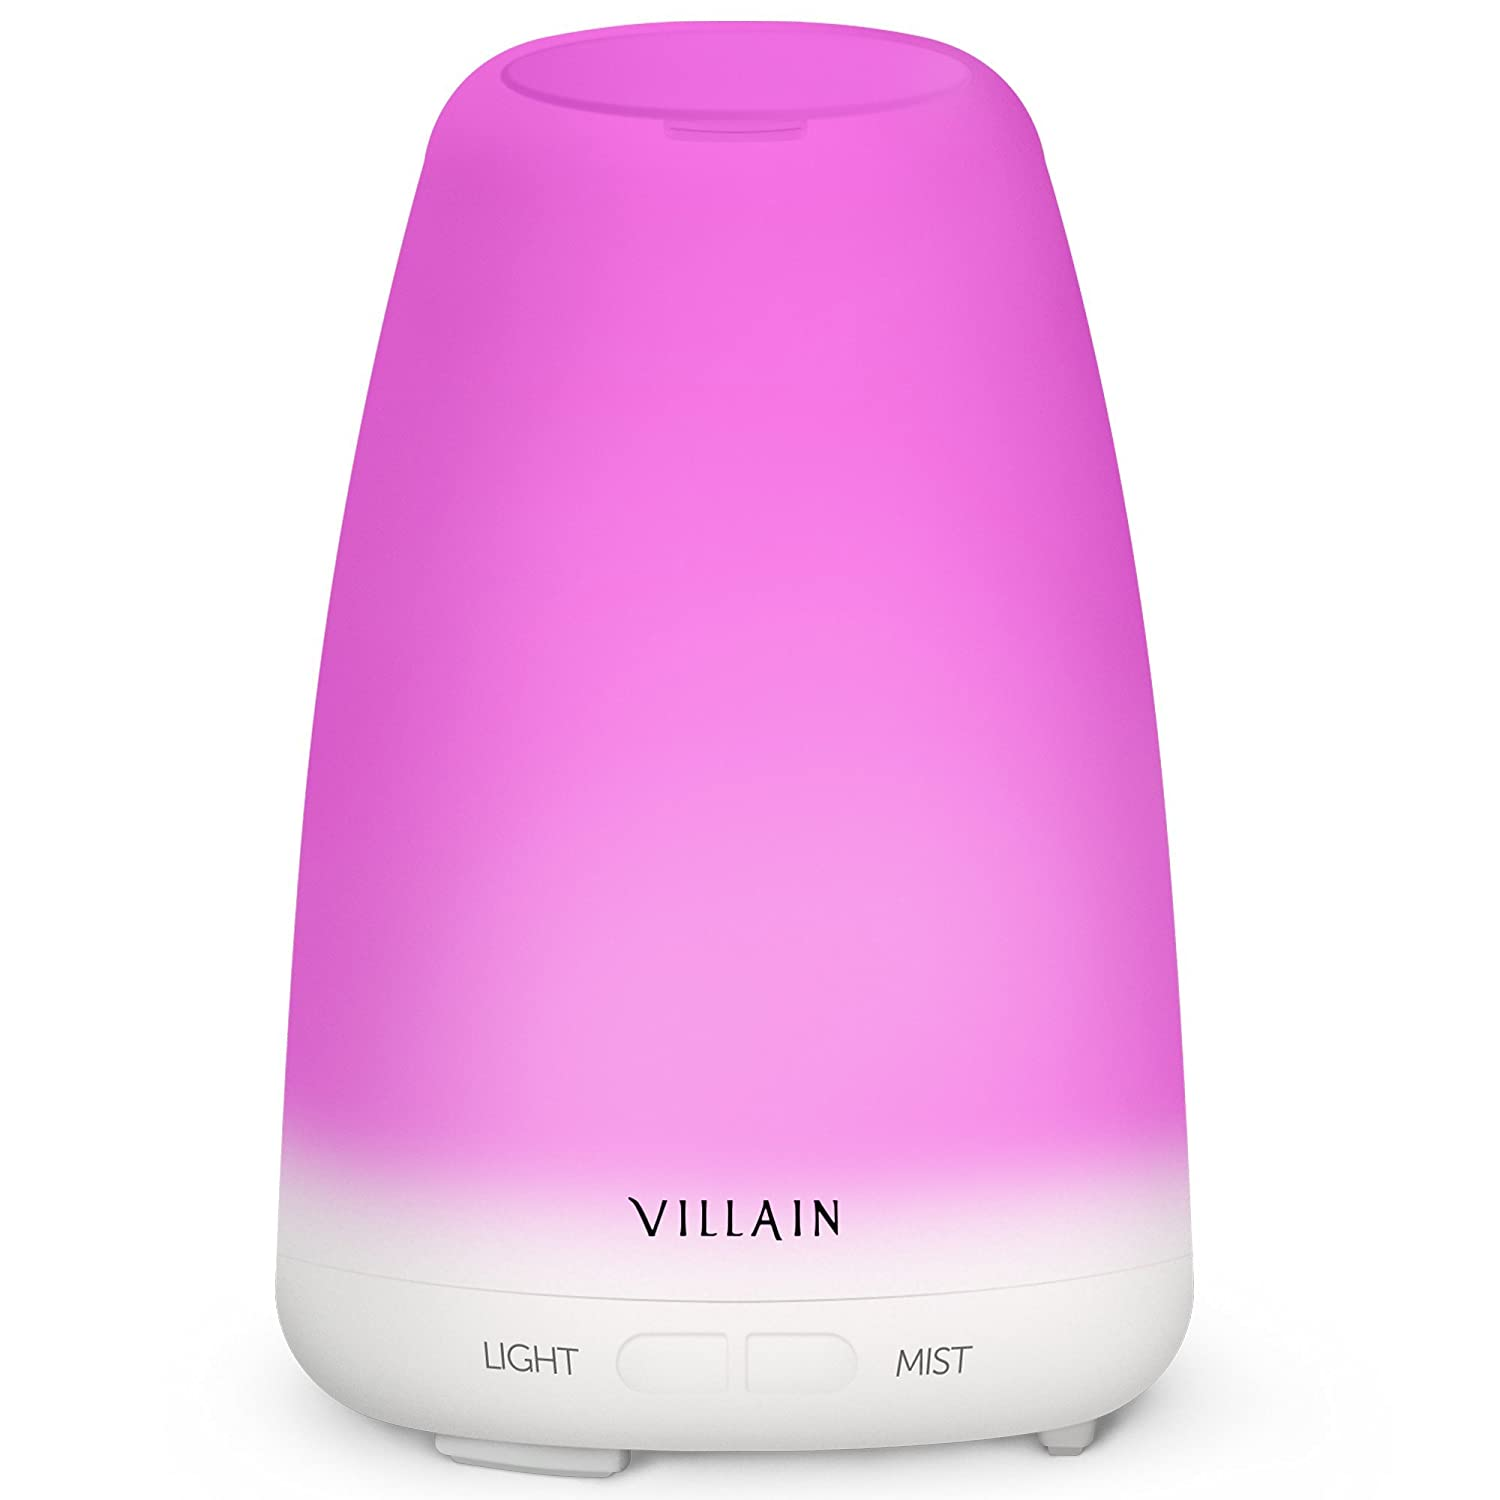 2017 Villain Essential Oil Diffuser - Beautiful Aromatherapy Ultrasonic Cool Mist Humidifier - No Noise & 7 Changing LED Lights - Waterless Auto Shut-Off Villain Technologies LP